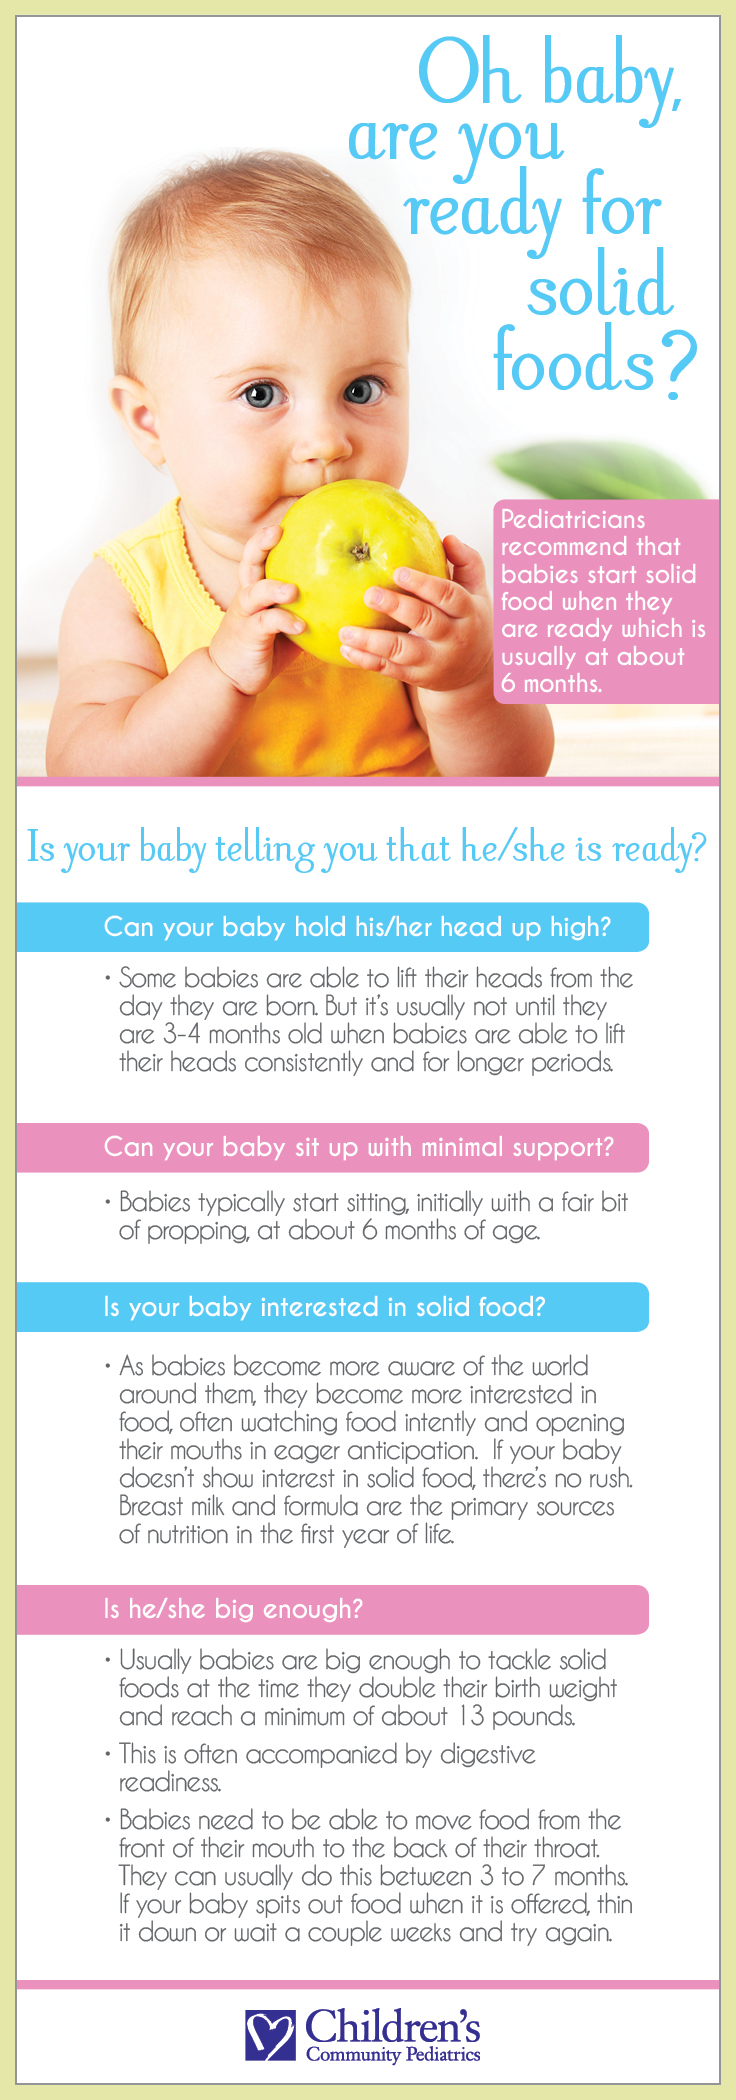 How to Tell If Your Baby is Ready for Solids